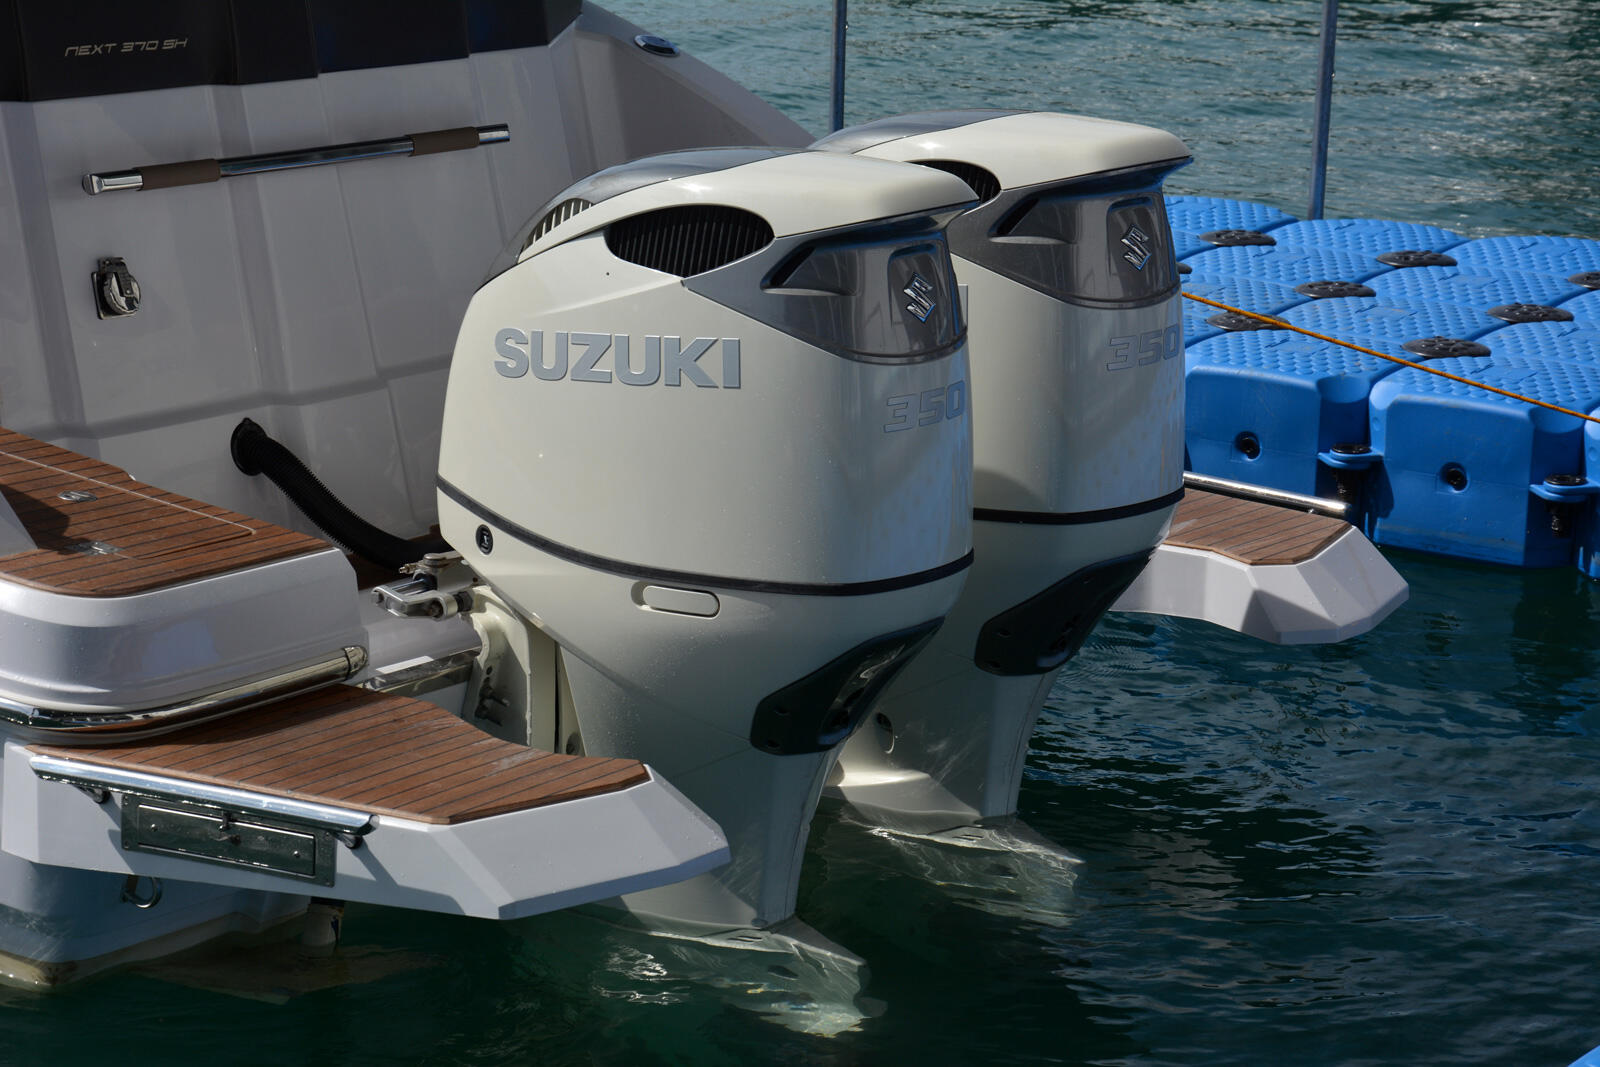 Suzuki DF 350A twin propeller outboard – The first official